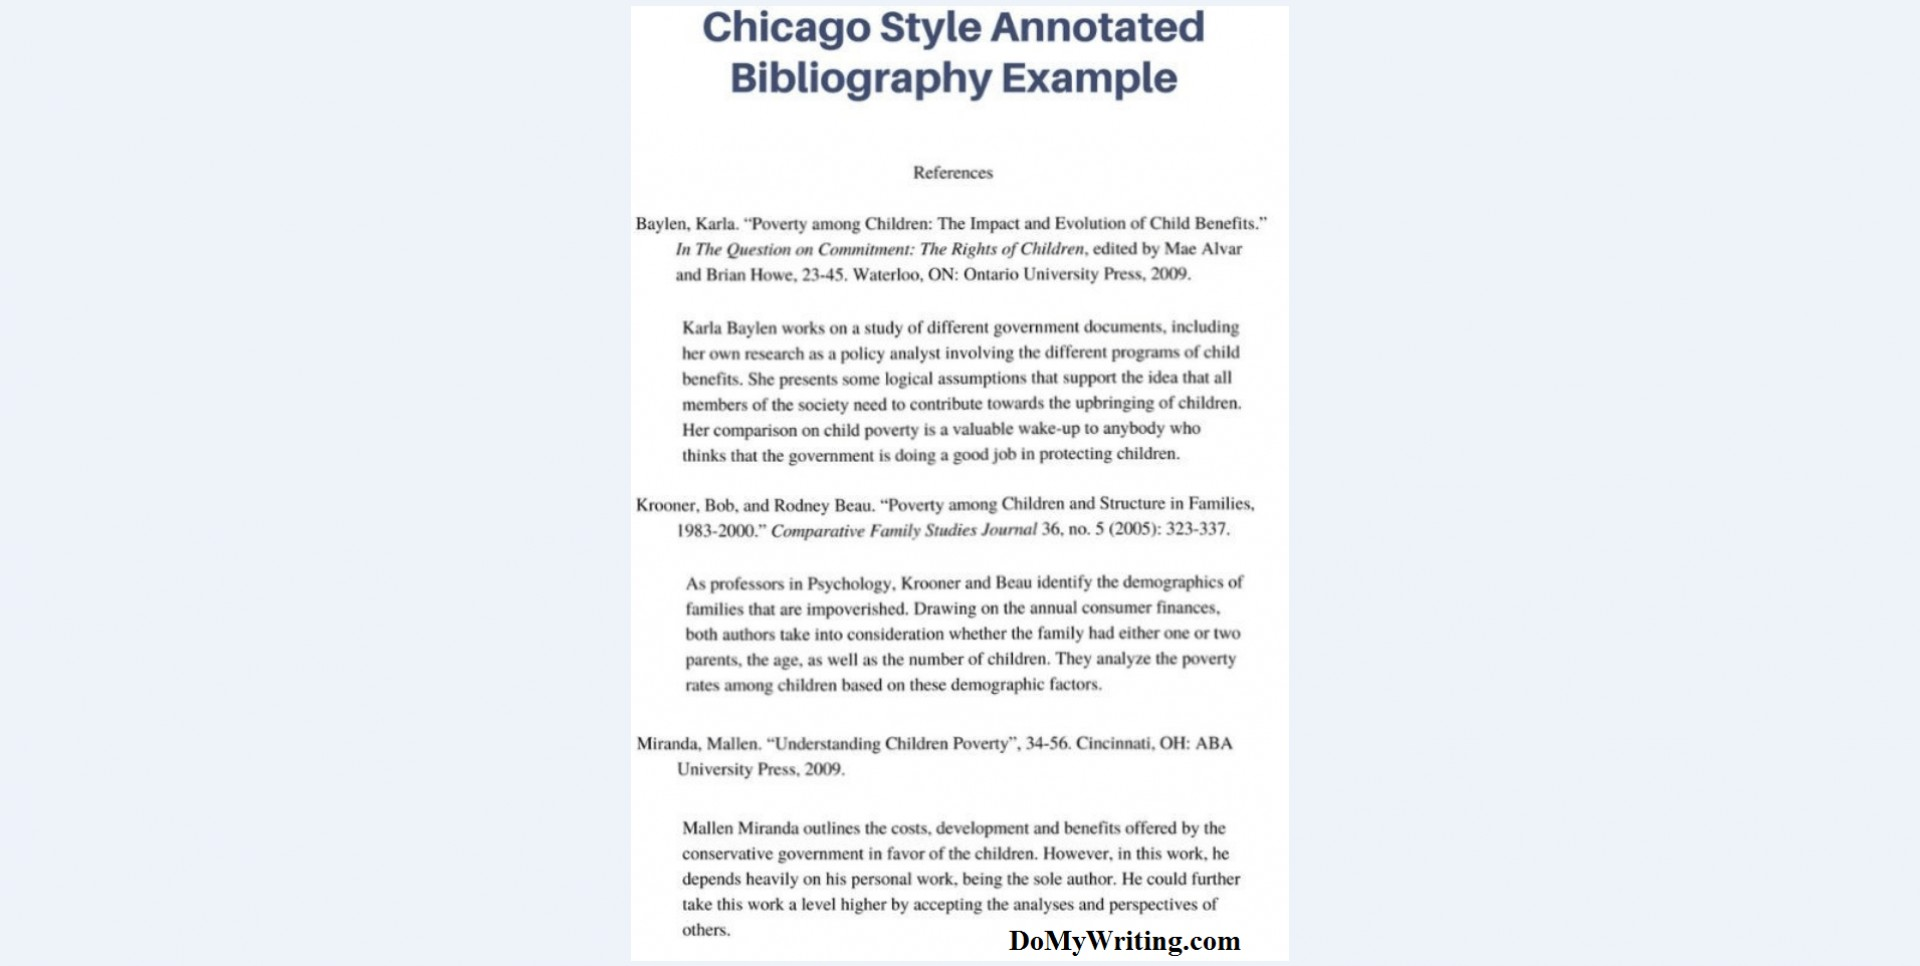 003 Annotated Bibliography Example Chicago Research Imposing Paper Proposal And 1920